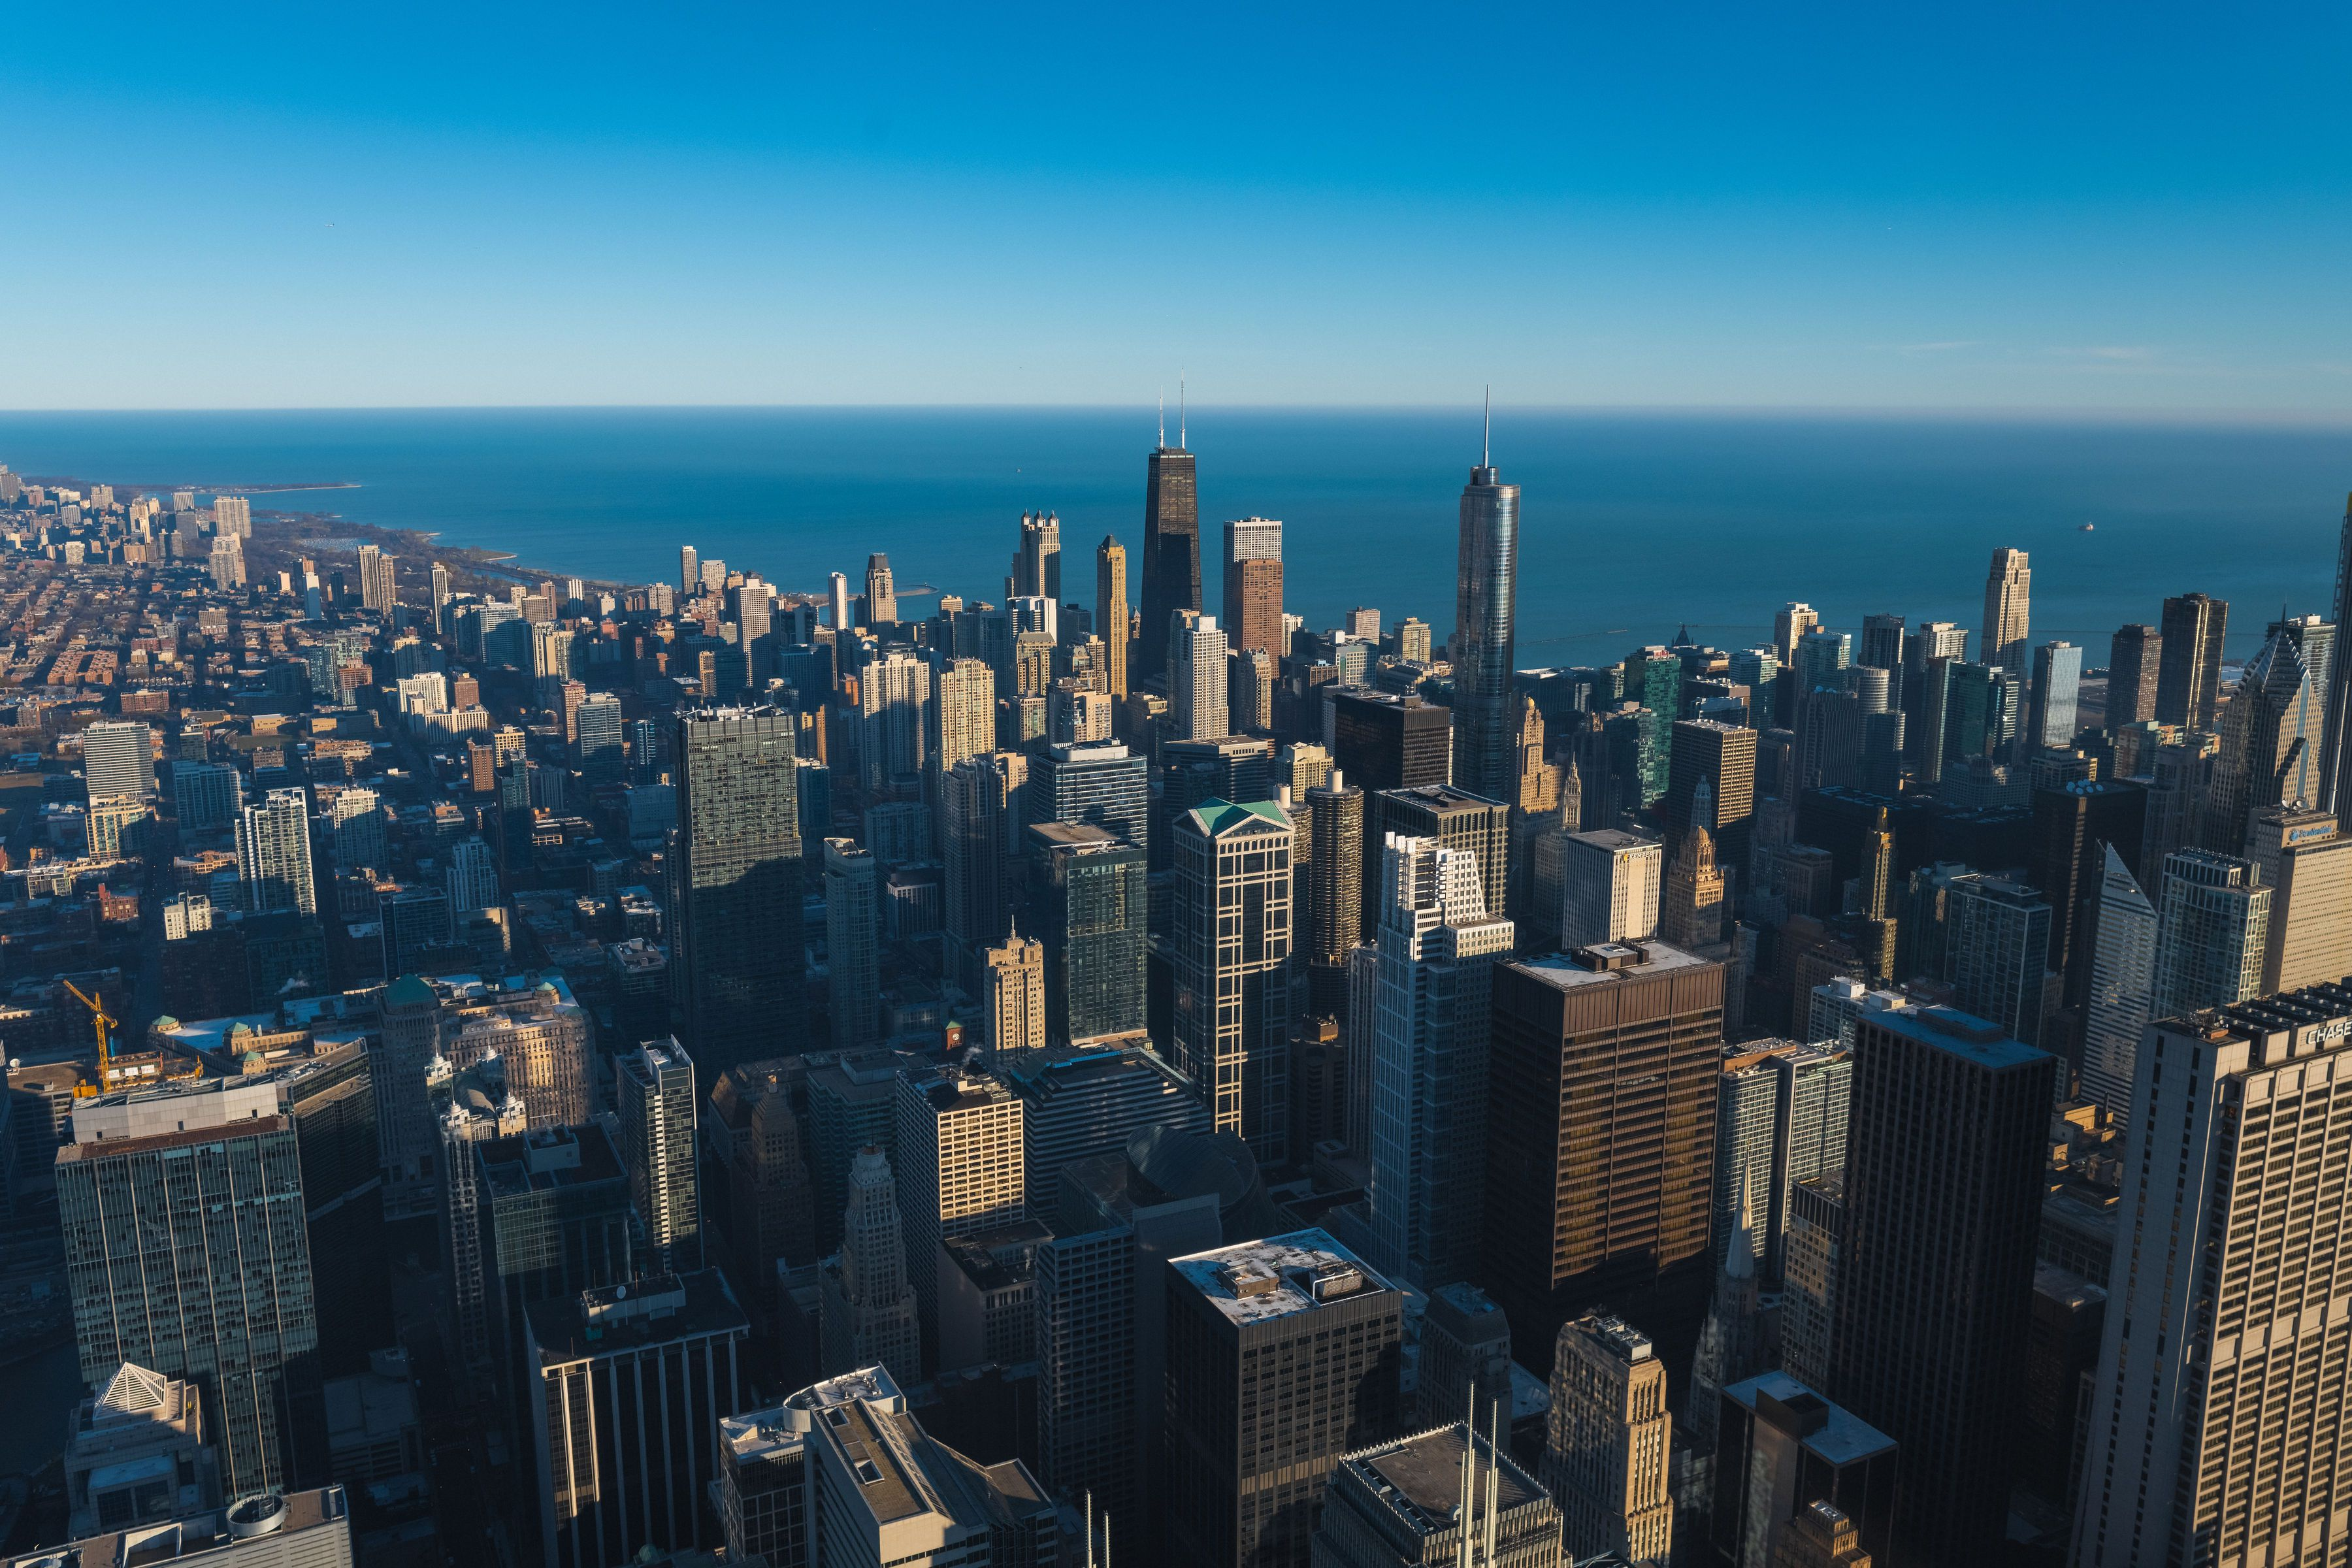 View from the Willis Tower deck (formerly the Sears Tower)